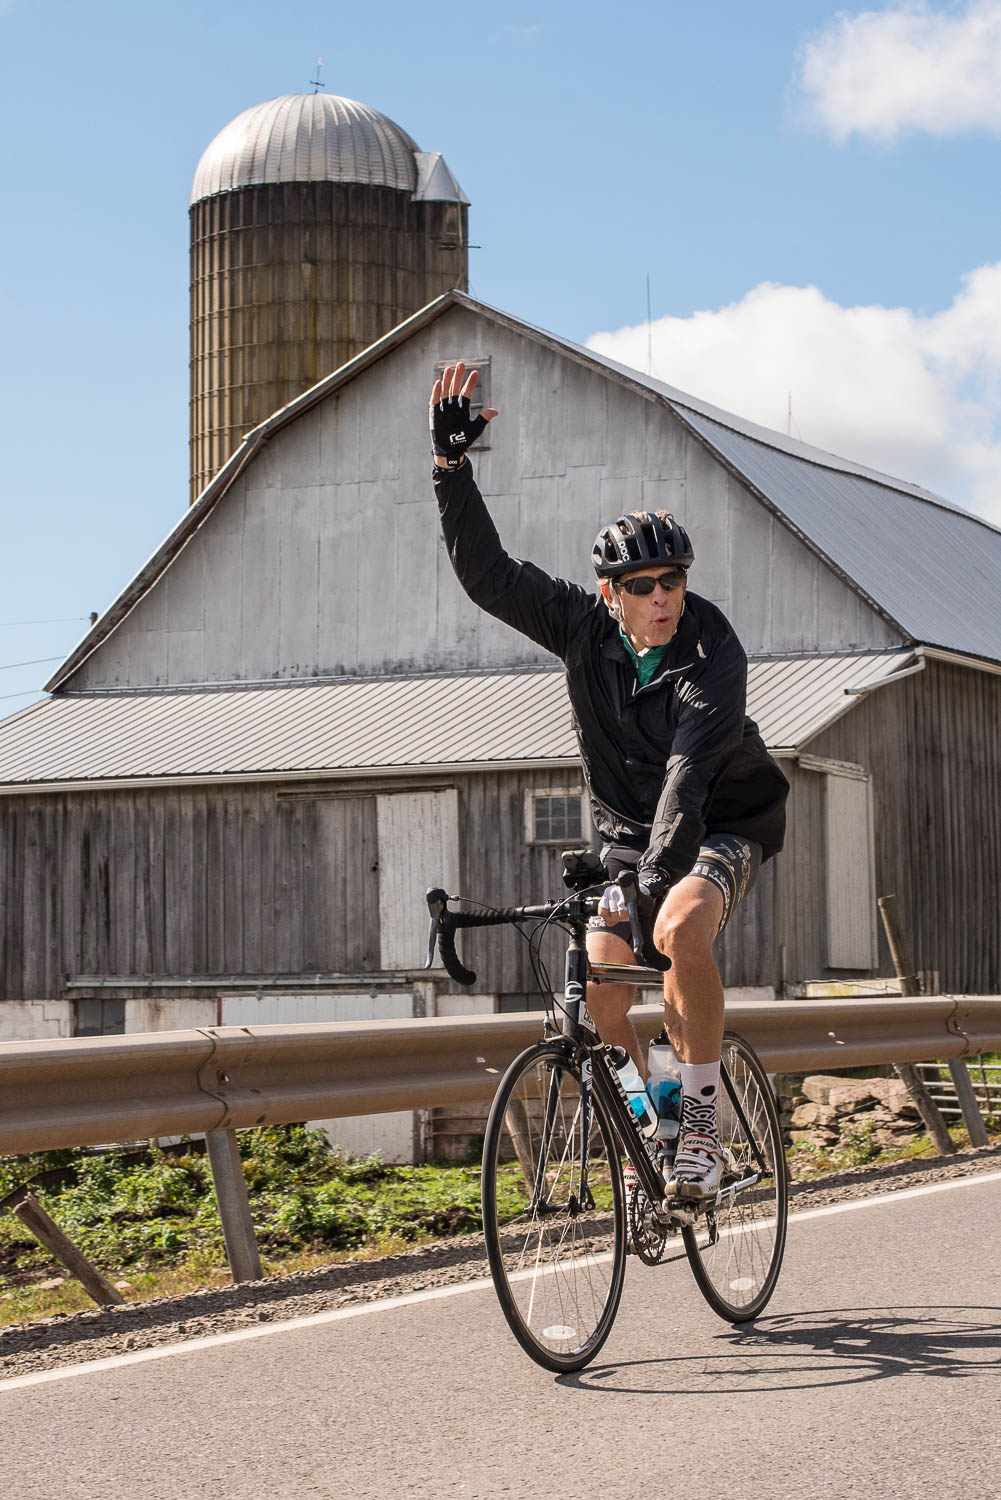 Cycling in Amish Country